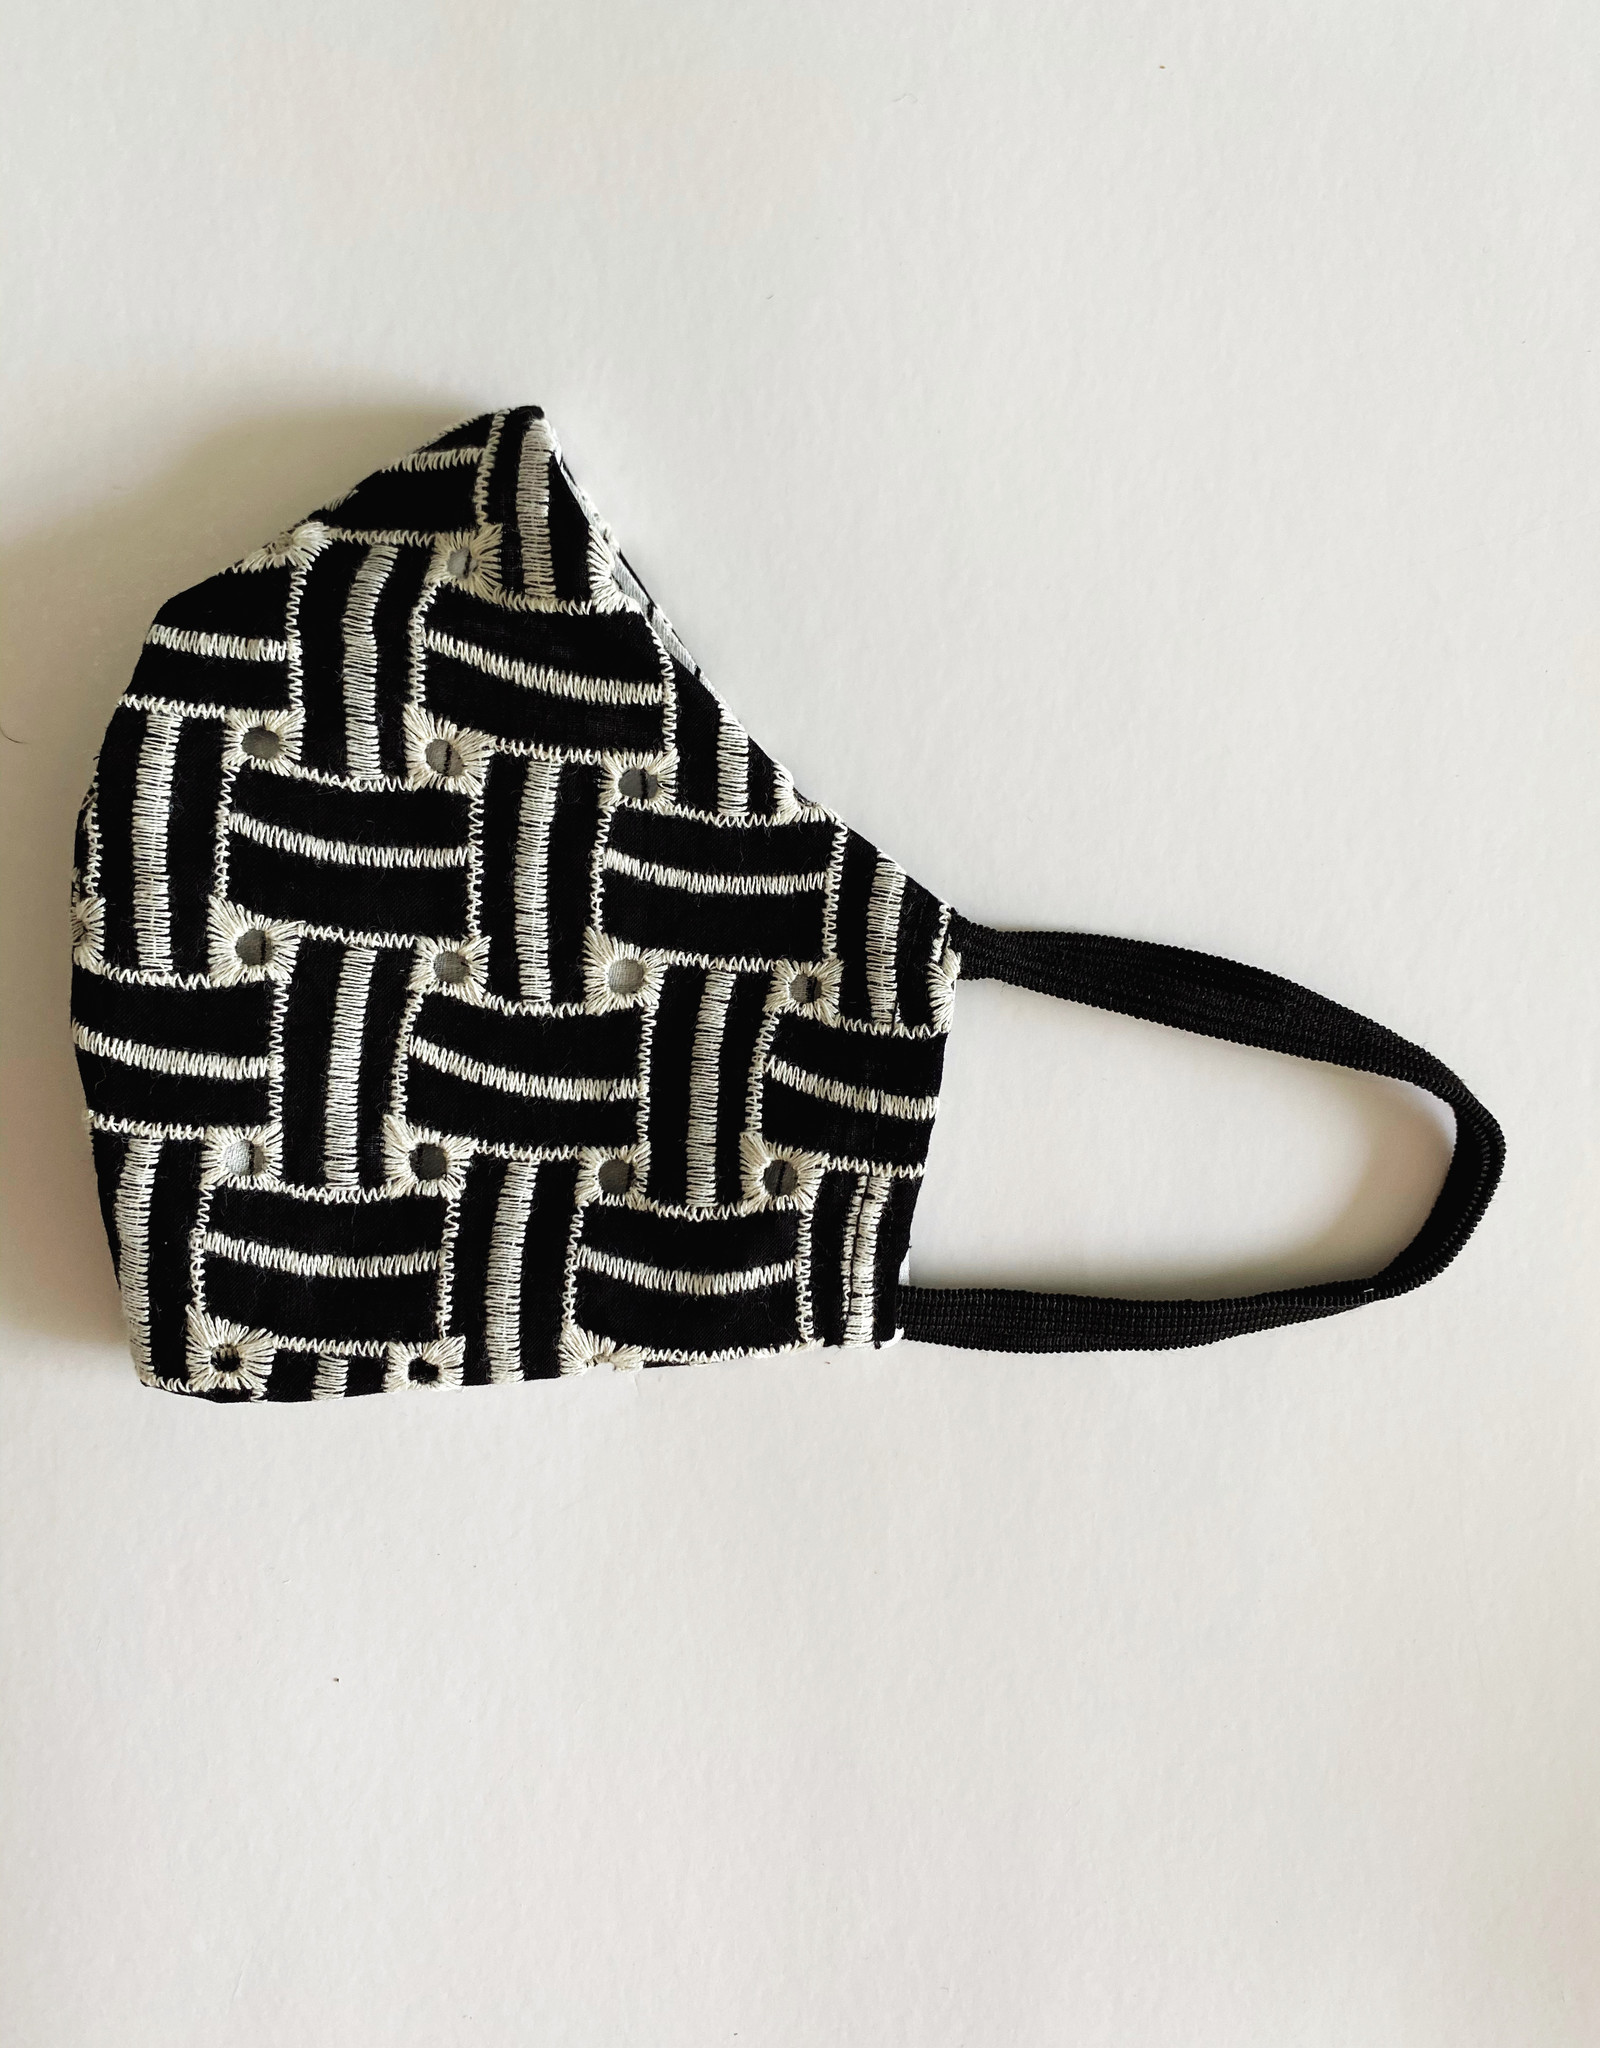 M SQUARE M SQUARE FACE MASK BLACK AND WHITE BASKET WEAVE